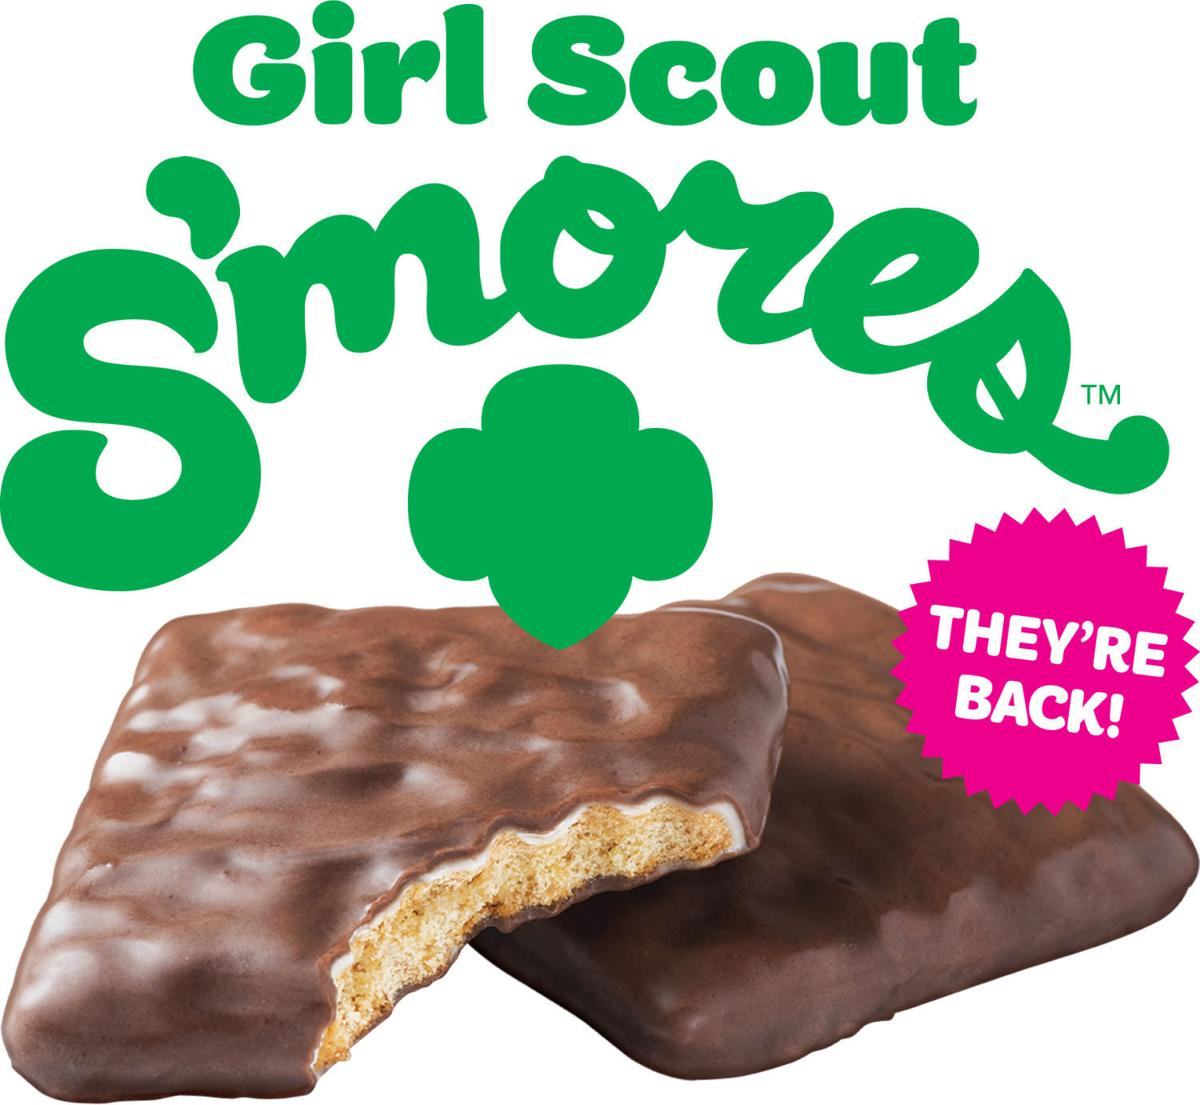 Girl Scout Smores Graphic